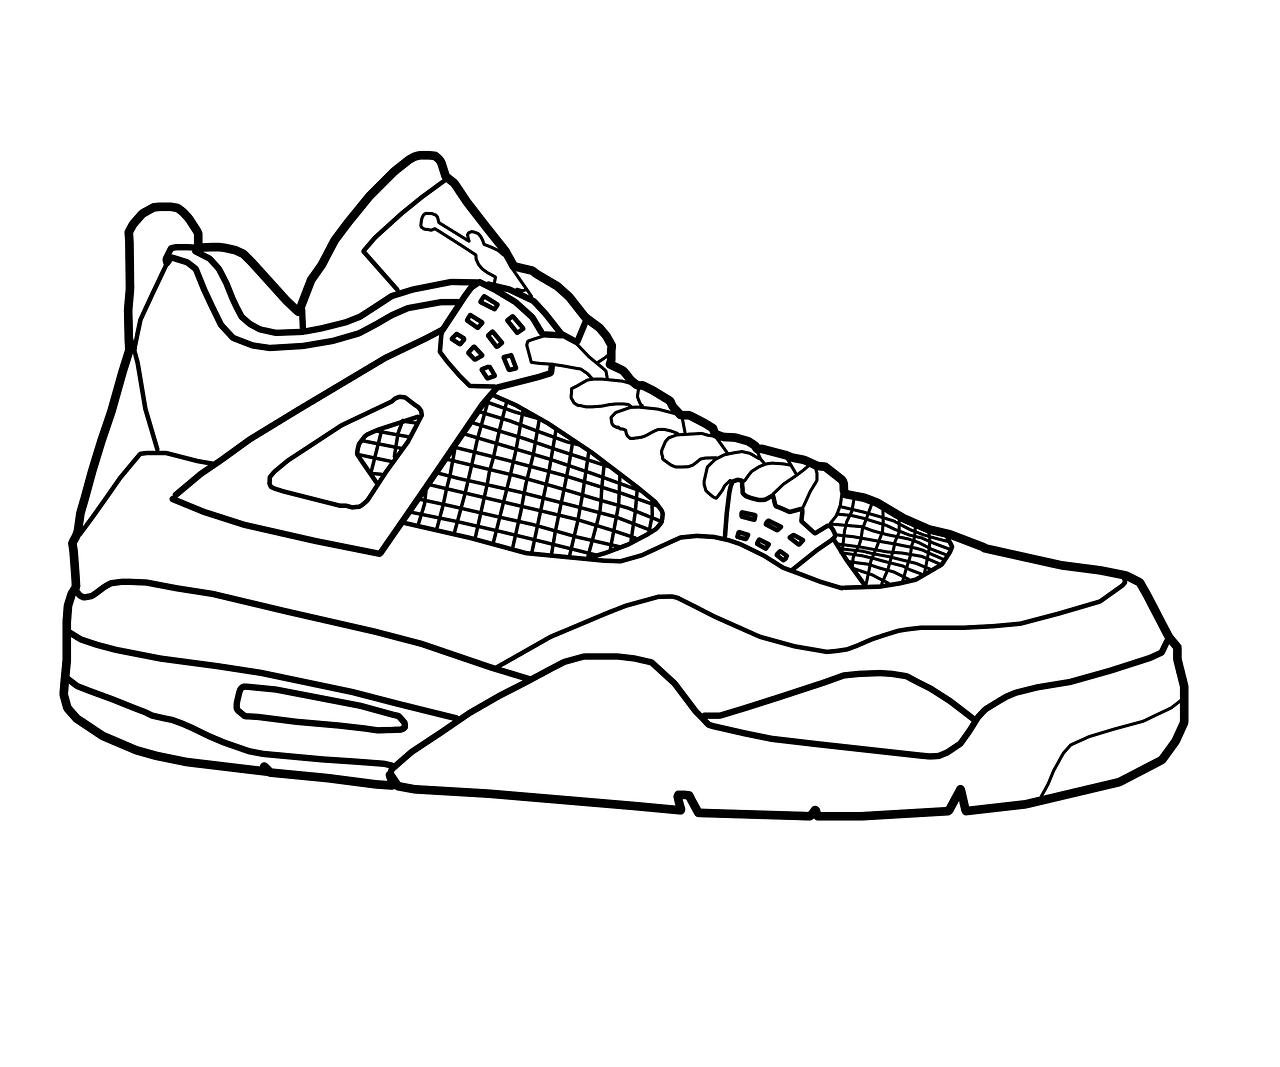 coloring pages shoes printable basketball shoe coloring pages download and print for free shoes coloring printable pages